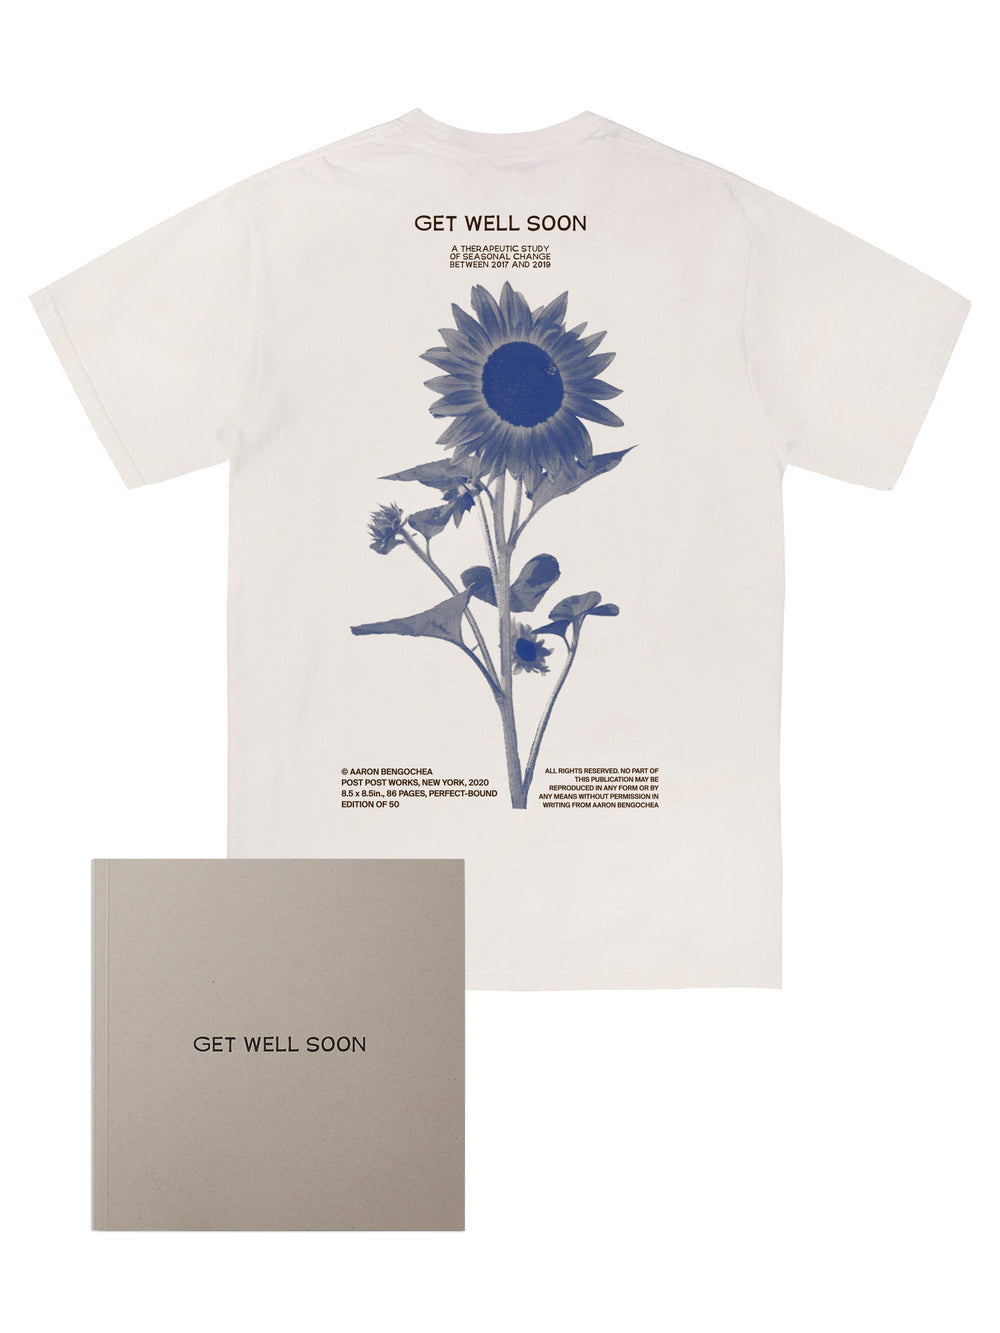 Get Well Soon Tee + Book